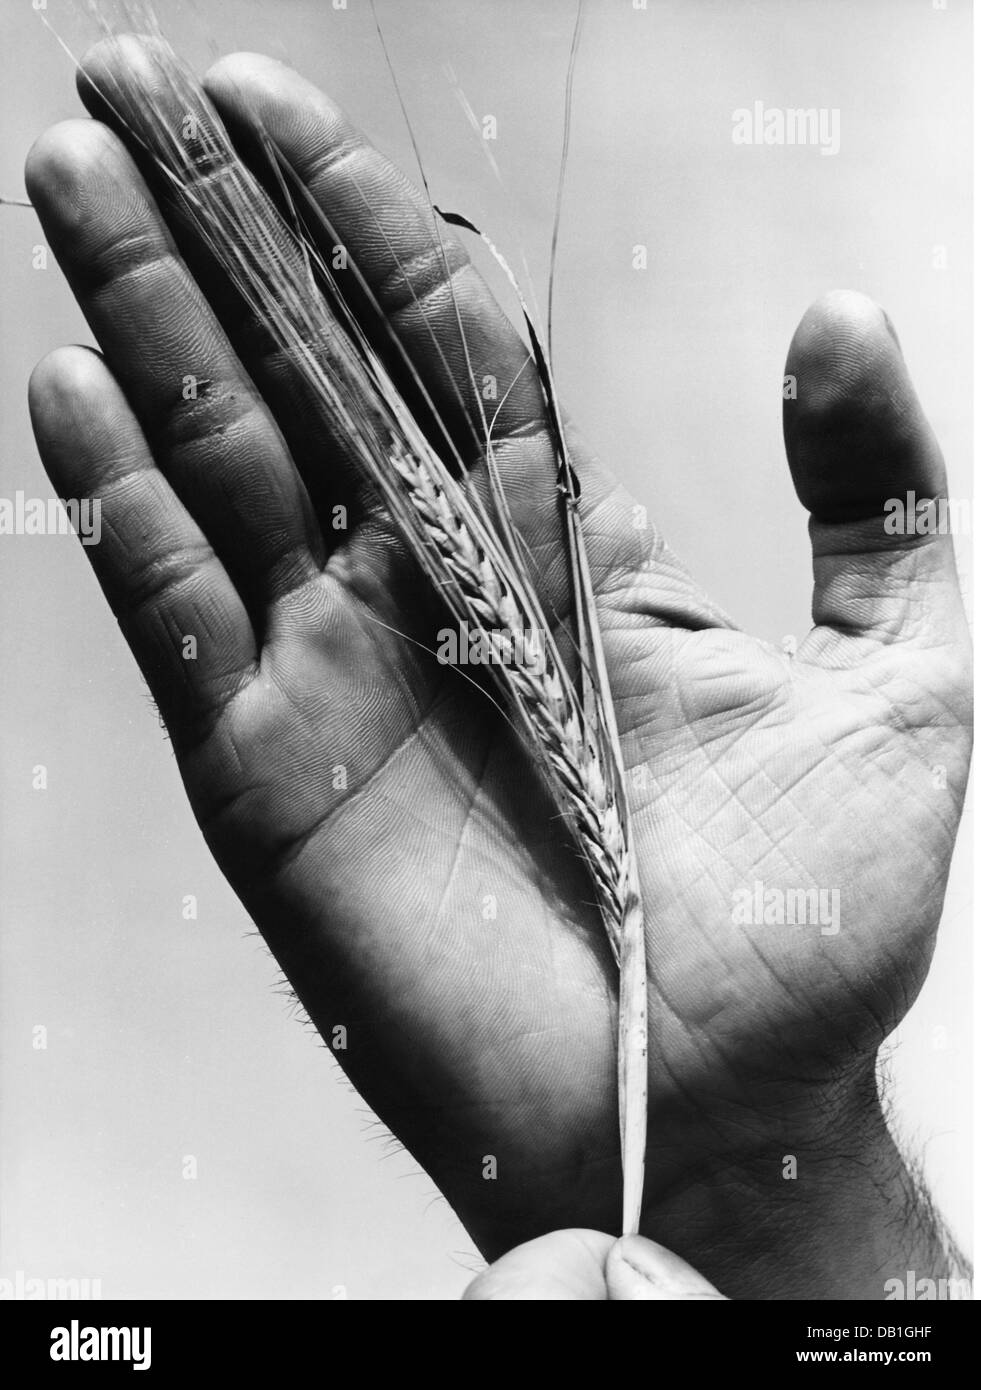 botany, barley (Hordeum vulgare), ear of brewer's barley, 1950s, Additional-Rights-Clearences-NA - Stock Image